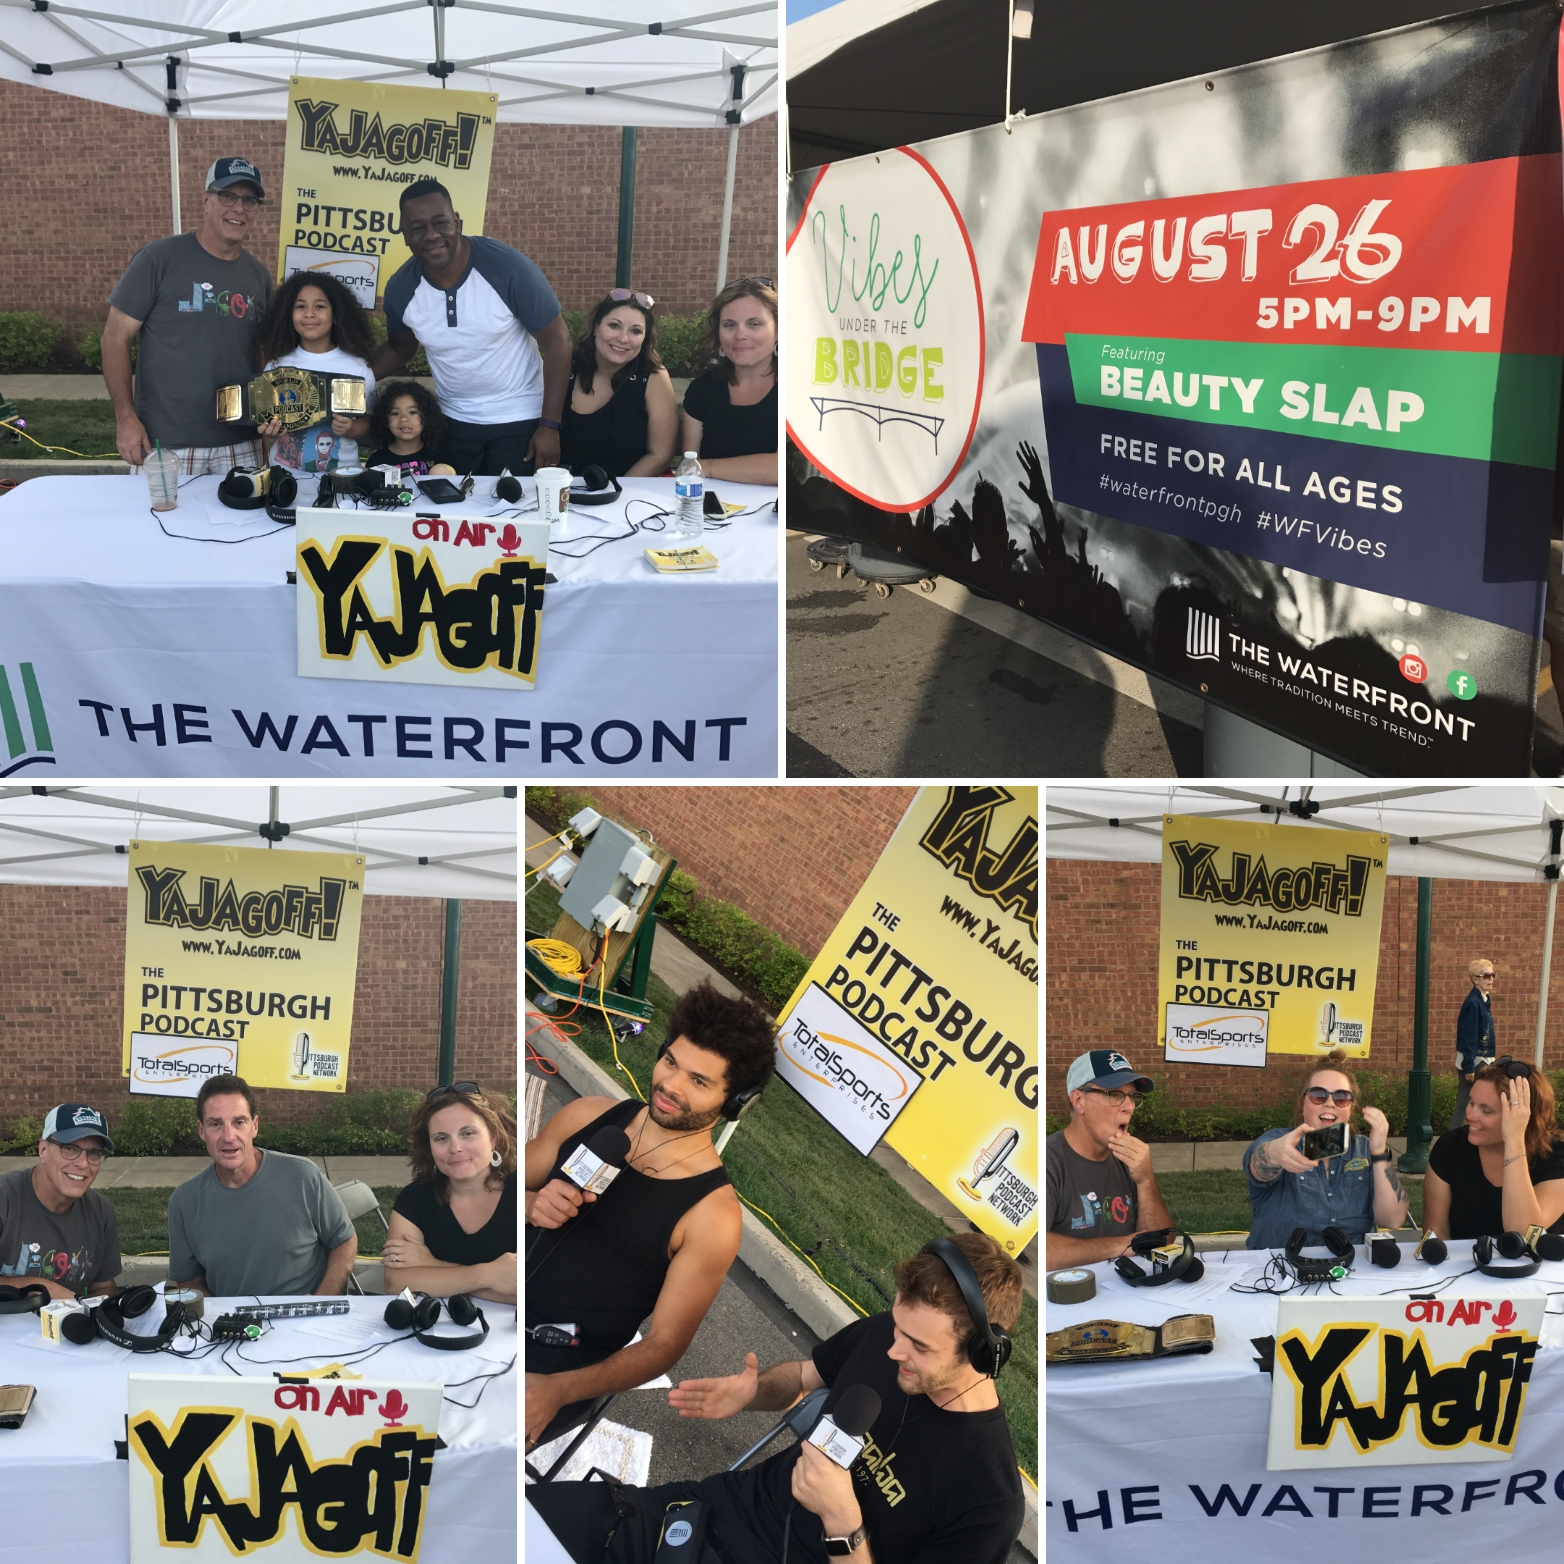 YaJagoff Podcast, Episode 83 – From The Waterfront Vibes Under the Bridge Party